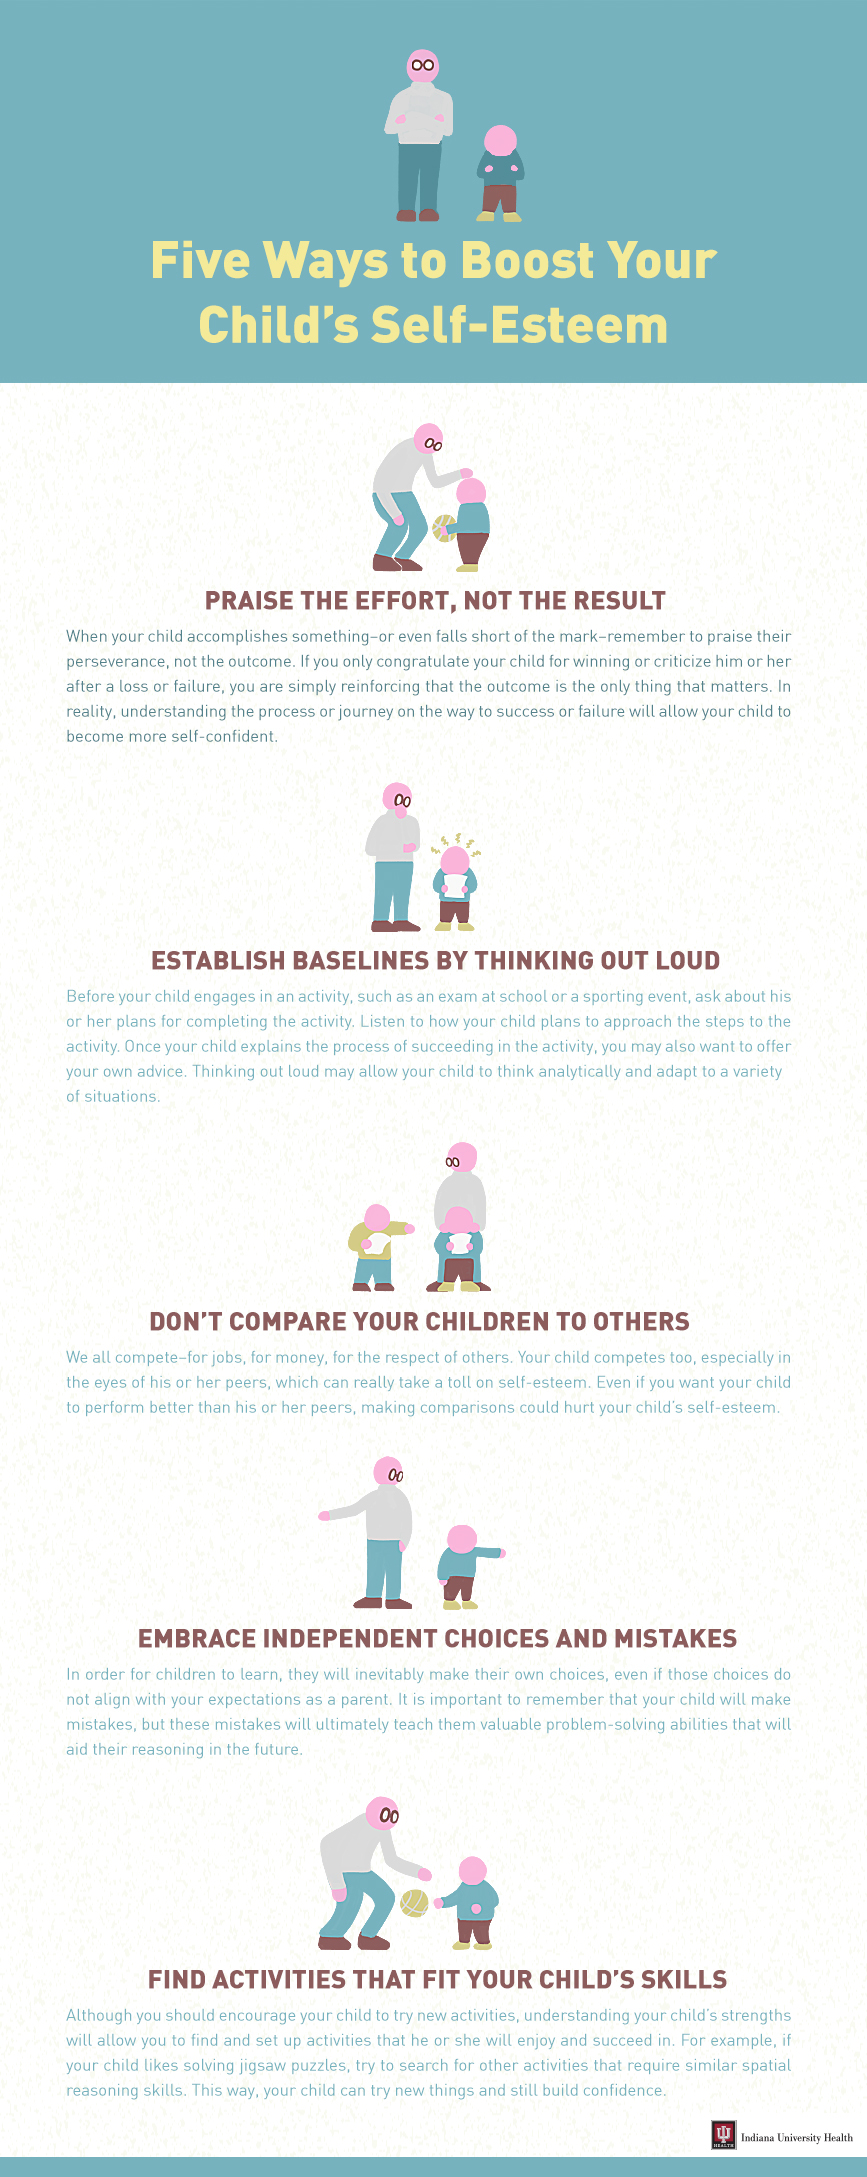 Five Ways to Boost Your Child's Self-Esteem